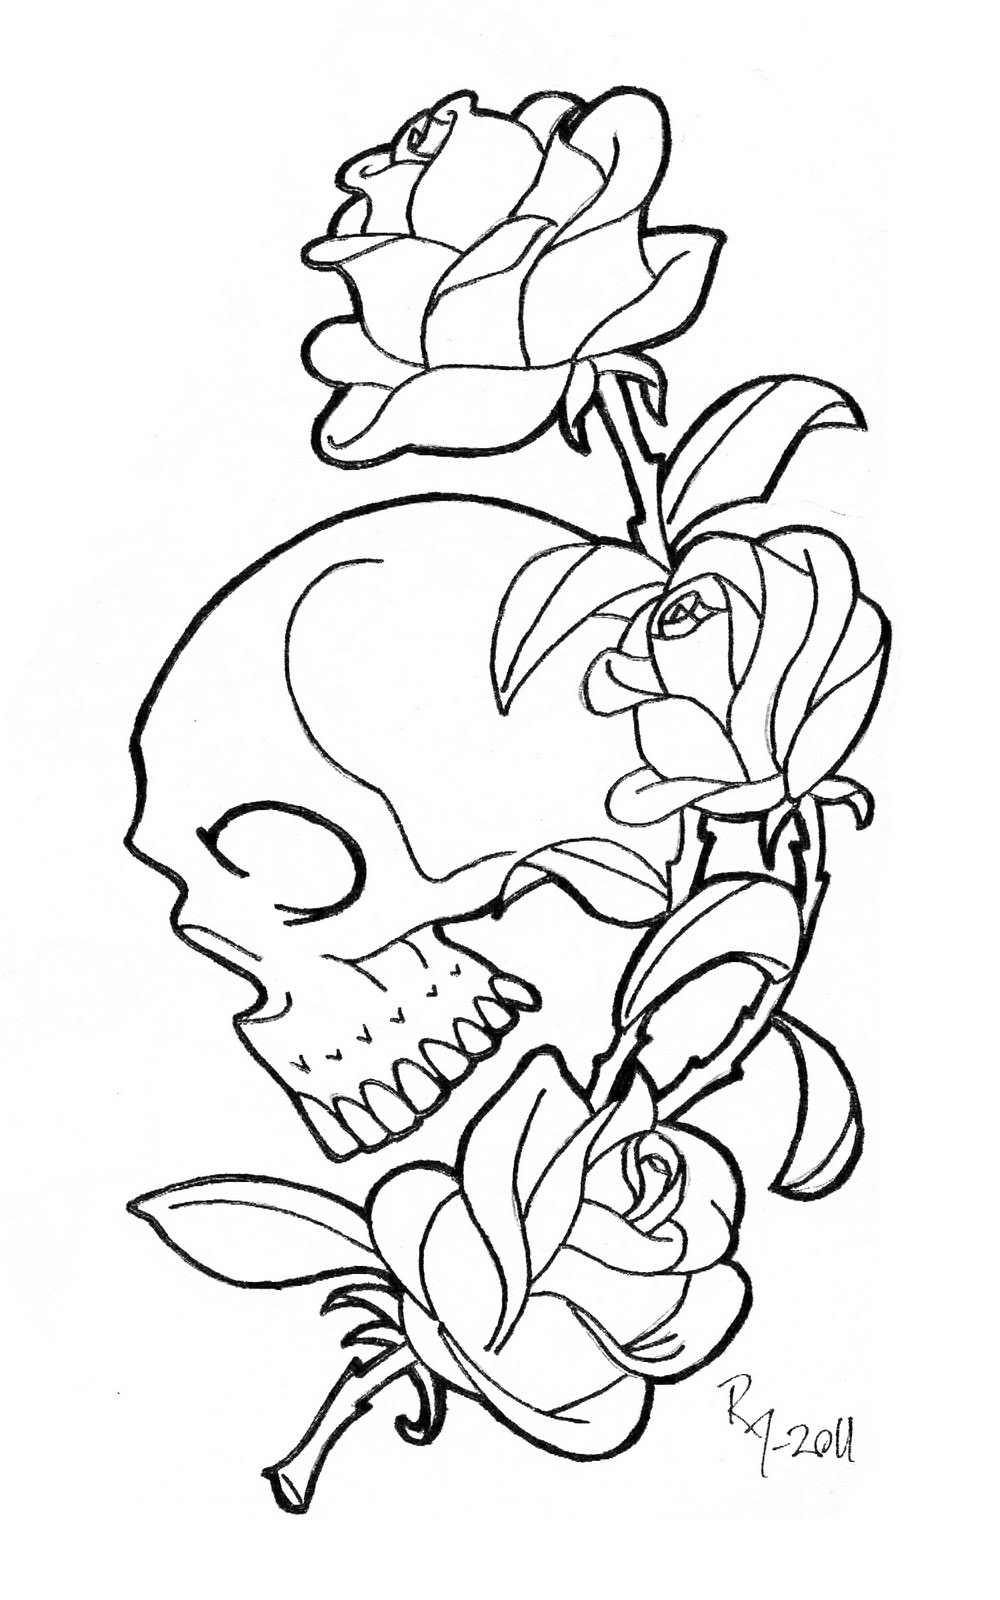 1000x1600 Awesome Skull And Roses Coloring Pages Free Coloring Pages Download